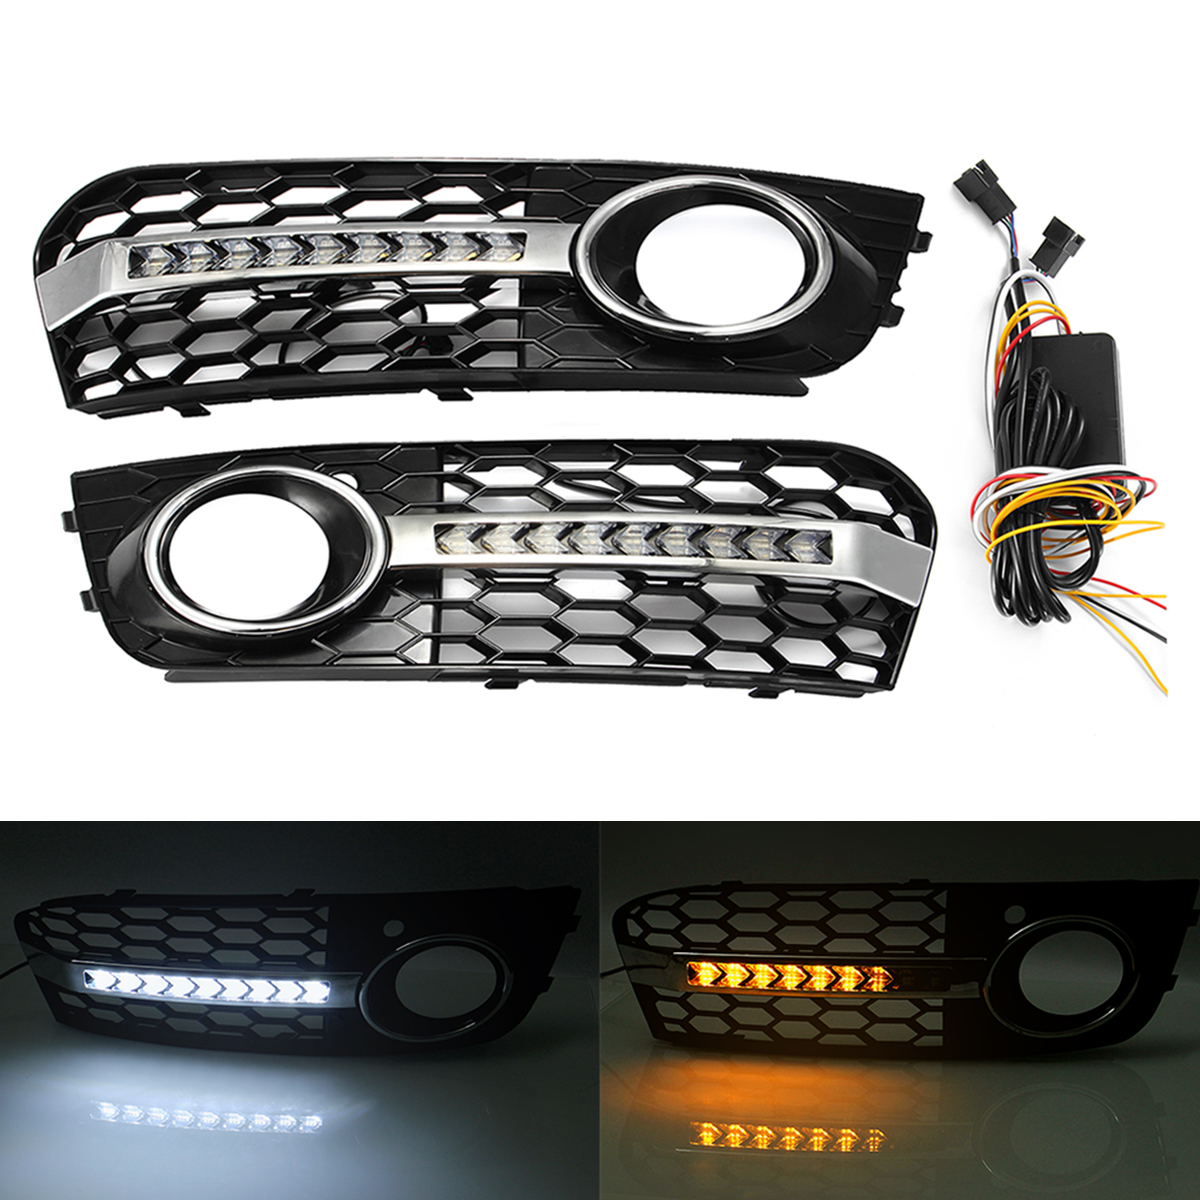 Honeycomb Mesh Fog Light Open Vent Grilles For Audi A4 B8 2009-2011 With Flowing Led Turn Signal Light Daytime Running lightHoneycomb Mesh Fog Light Open Vent Grilles For Audi A4 B8 2009-2011 With Flowing Led Turn Signal Light Daytime Running light